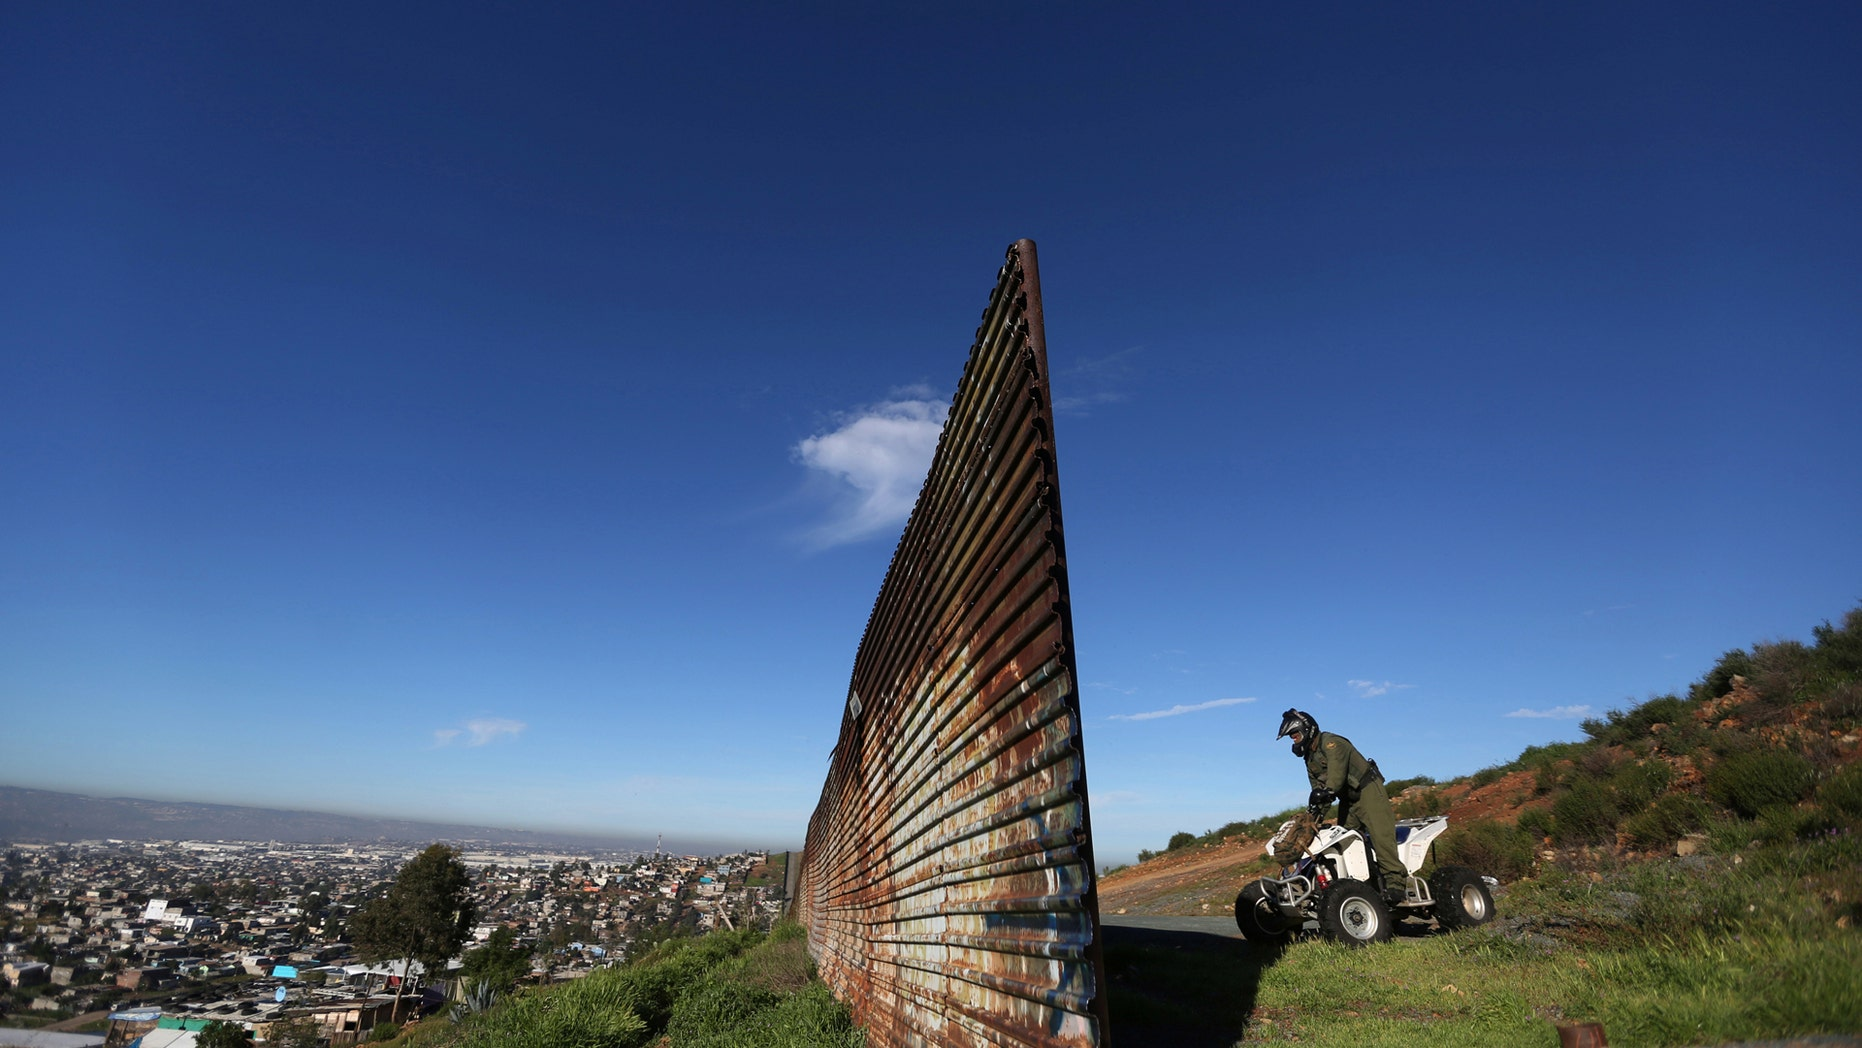 File photo: A member of the U.S. border patrol inspects the area where the border fence separating Mexico and the United States is interrupted, on the outskirts of Tijuana, Mexico, February 21, 2017. (REUTERS/Edgard Garrido)